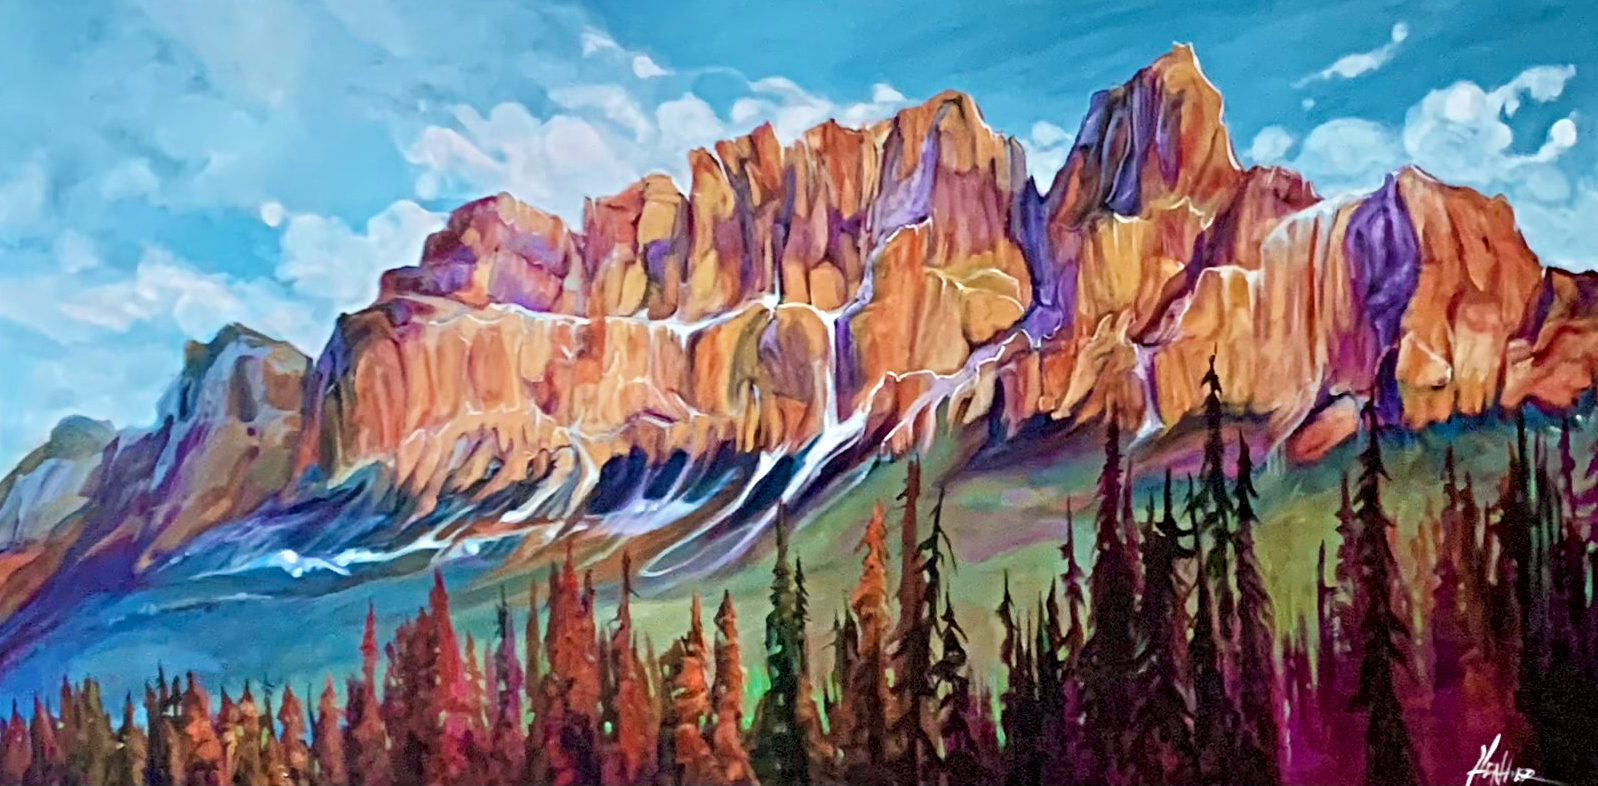 Beneath the Walls of the Castle, Castle Mountain painting by Heather Pant   Effusion Art Gallery + Cast Glass Studio, Invermere BC